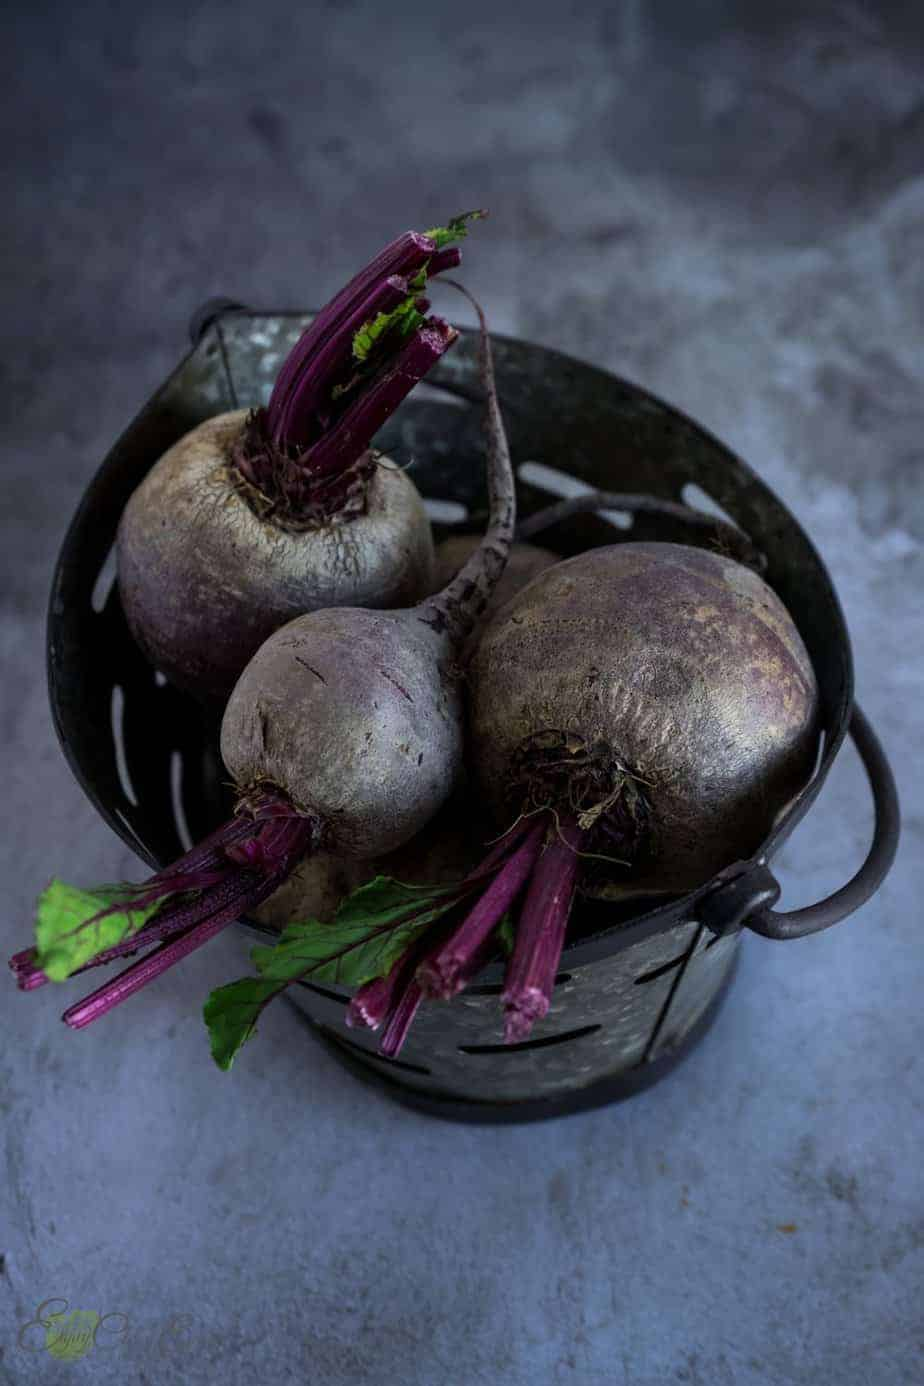 beetroots raw in a small metal basket before cooking.